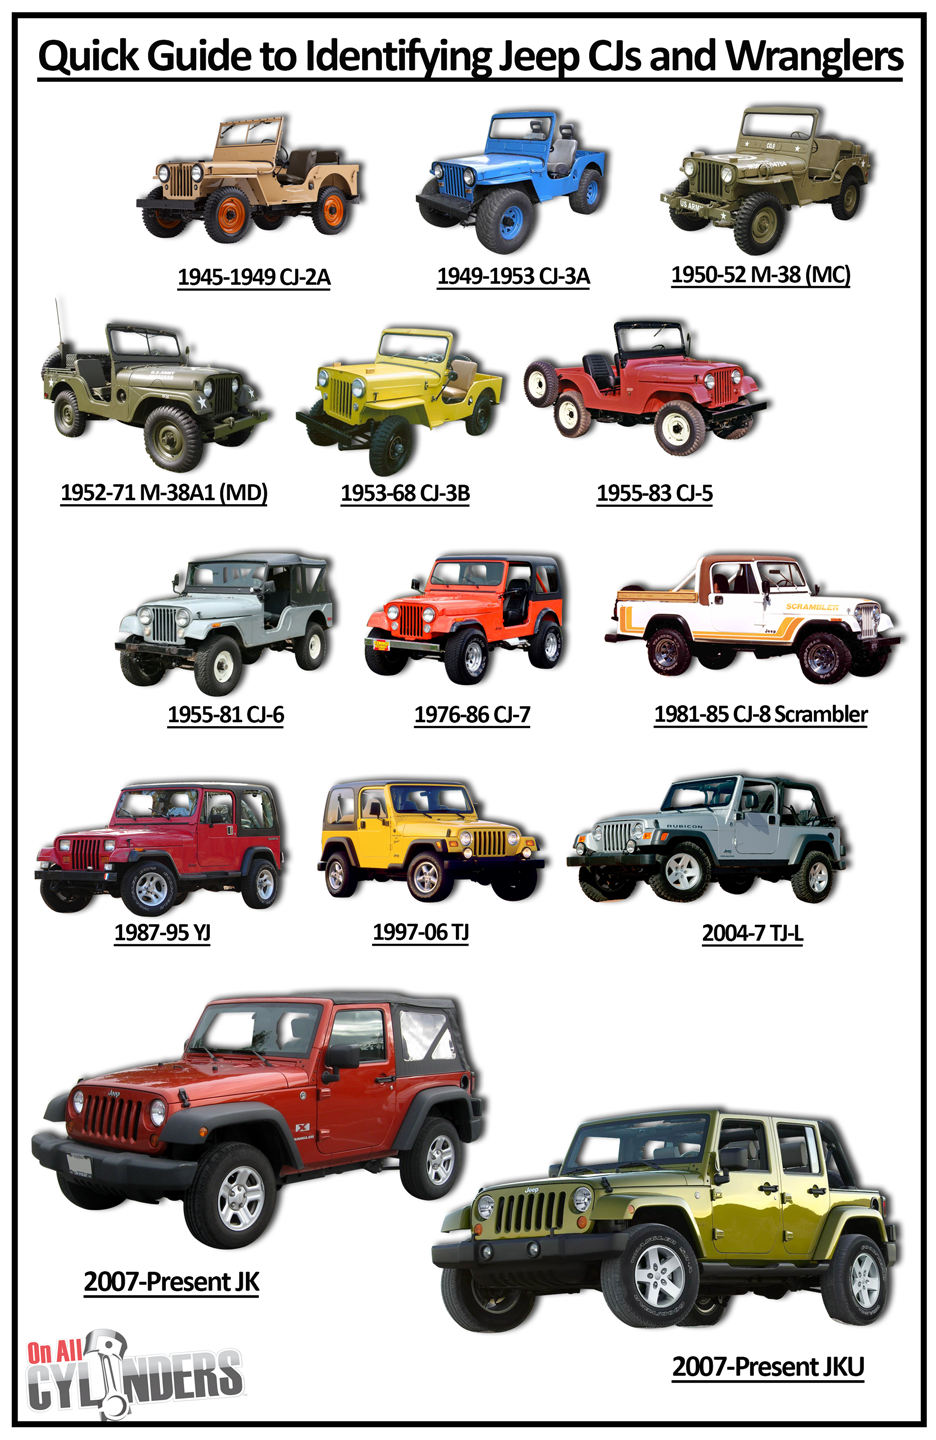 Ride Guides A Quick Guide To Identifying Jeep Cjs And